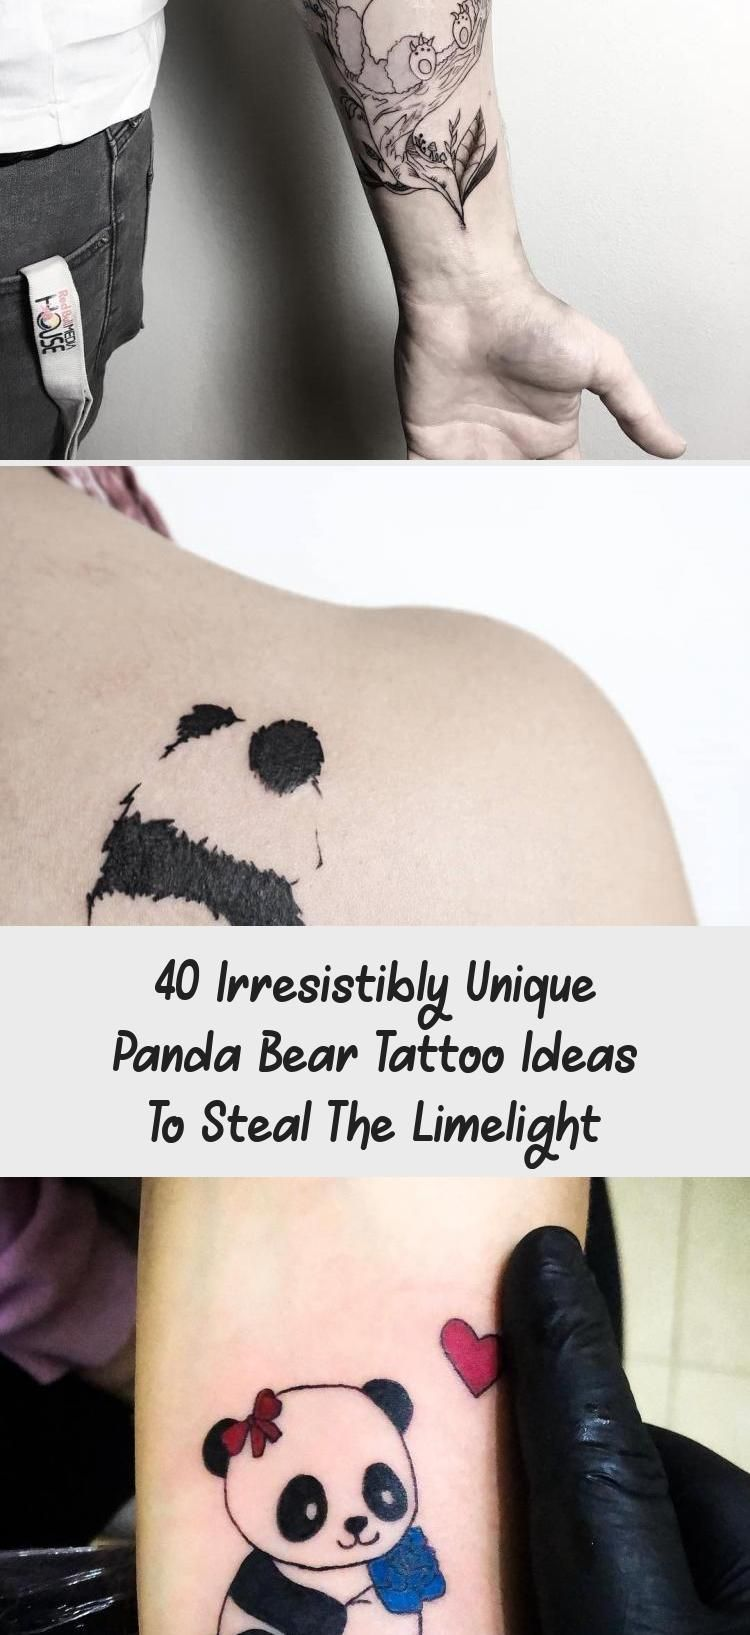 40 Irresistibly Unique Panda Bear Tattoo Ideas To Steal The Limelight - Tattoo -  40 Irresistibly Unique Panda Bear Tattoo Ideas to Steal the Limelight #tattoo #tattooideas #pandata - #Bear #ideas #irresistibly #limelight #panda #steal #tattoo #tattooideascollarbone #tattooideasformen #tattooideassmall #tattooideasunique #unique